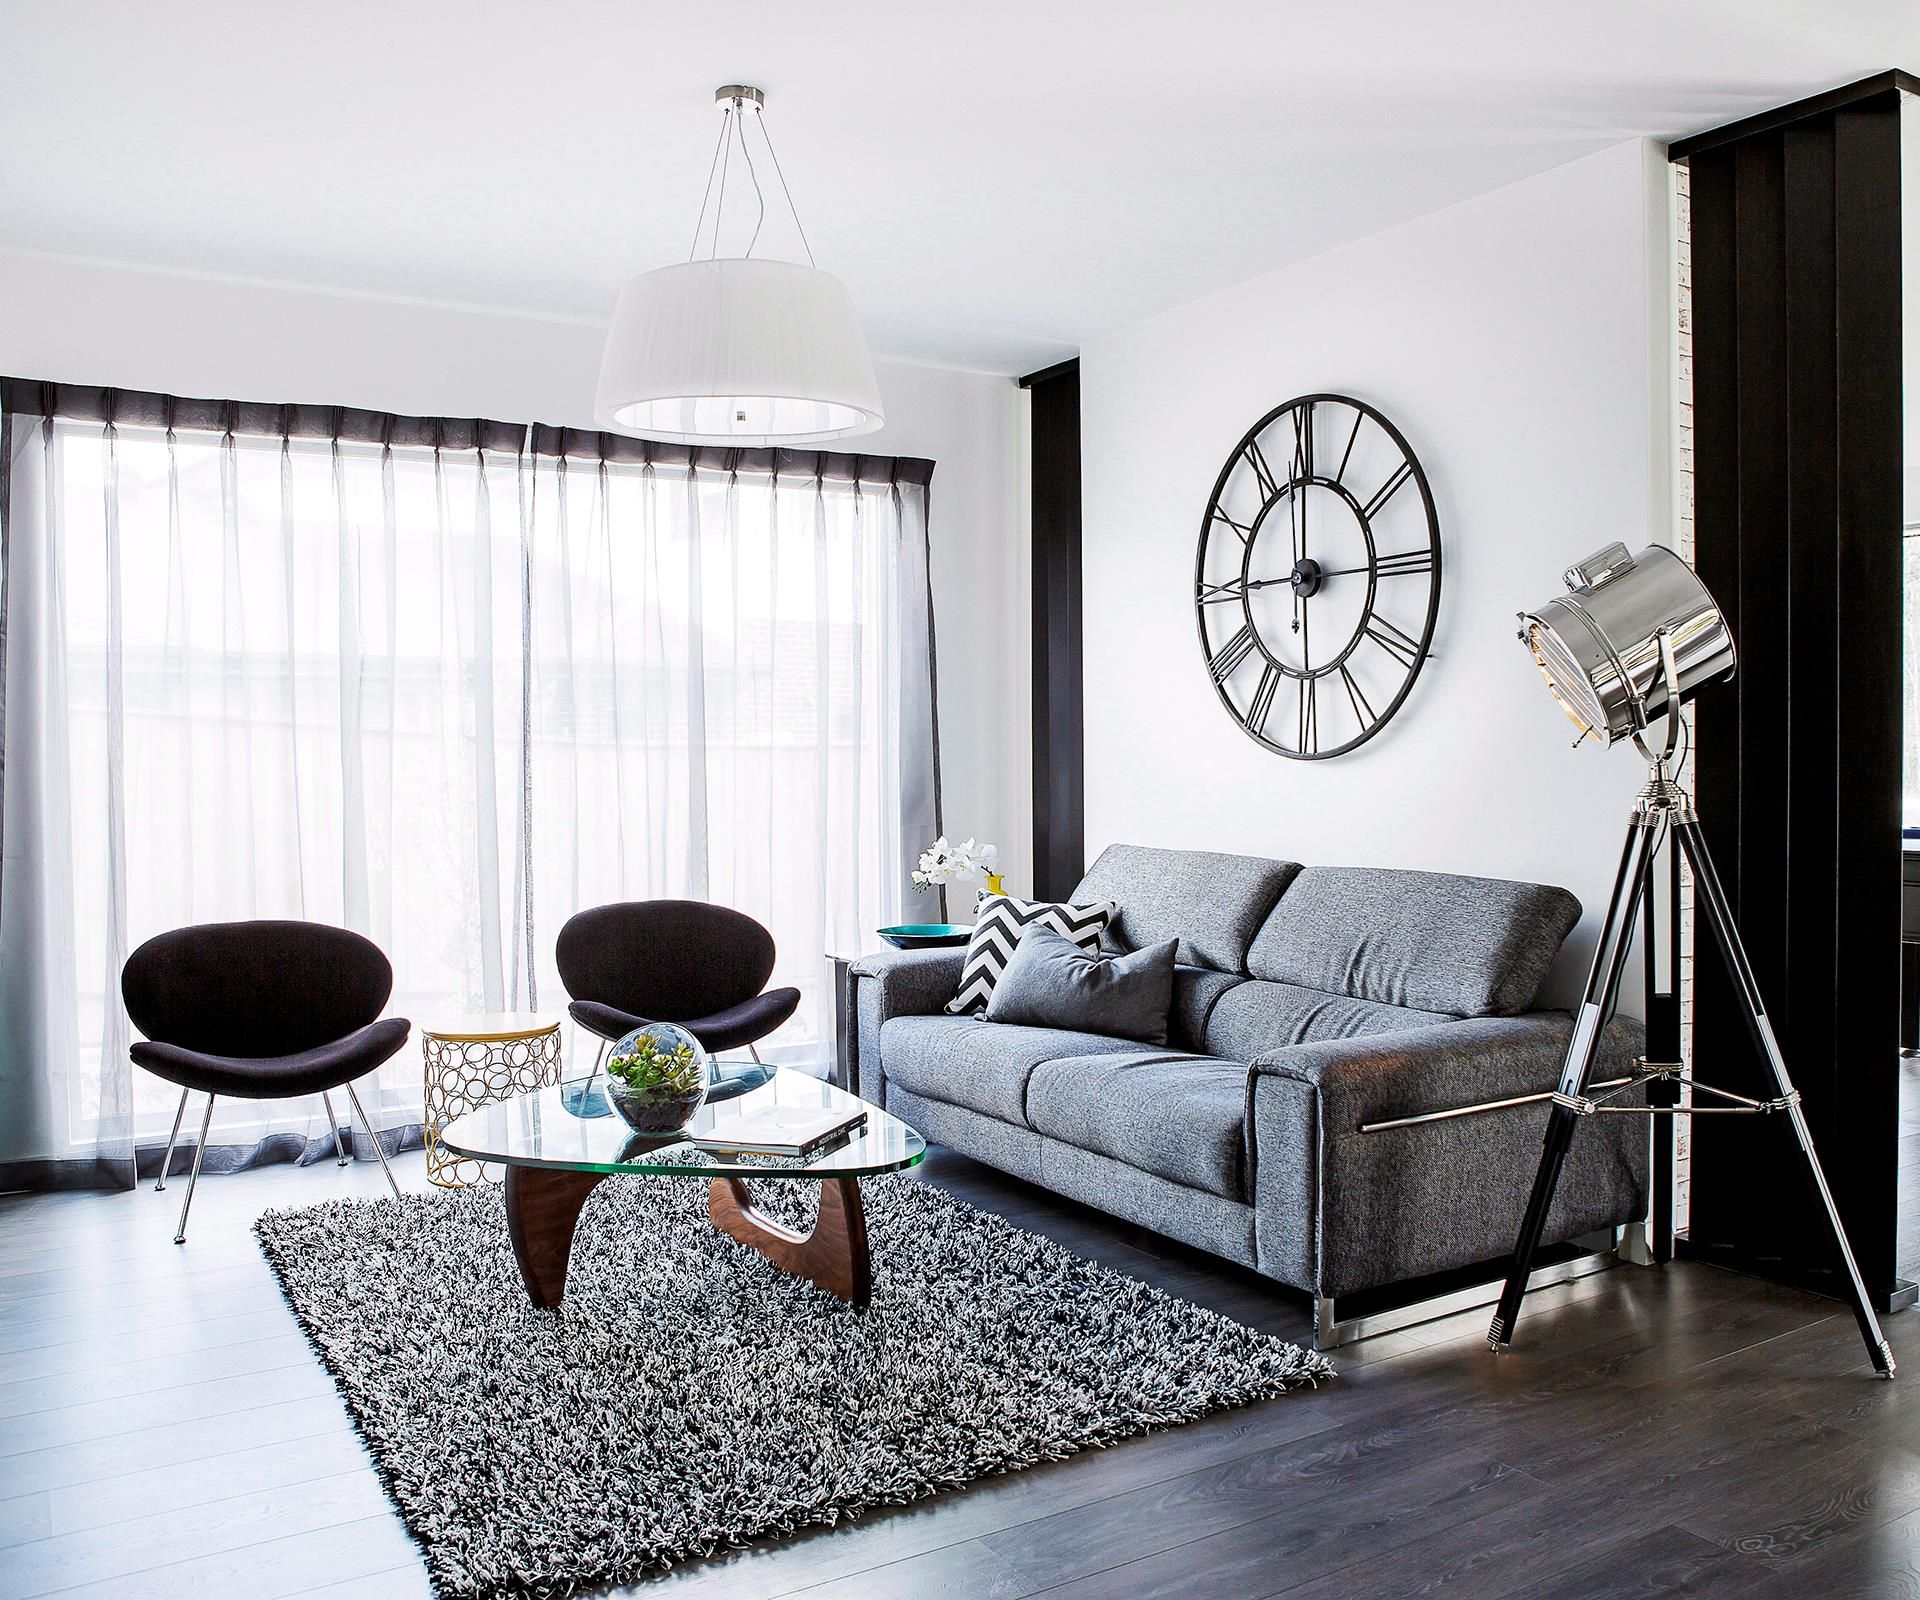 Organise Your Living Room One Day At A Time | Living rooms, Clutter ...